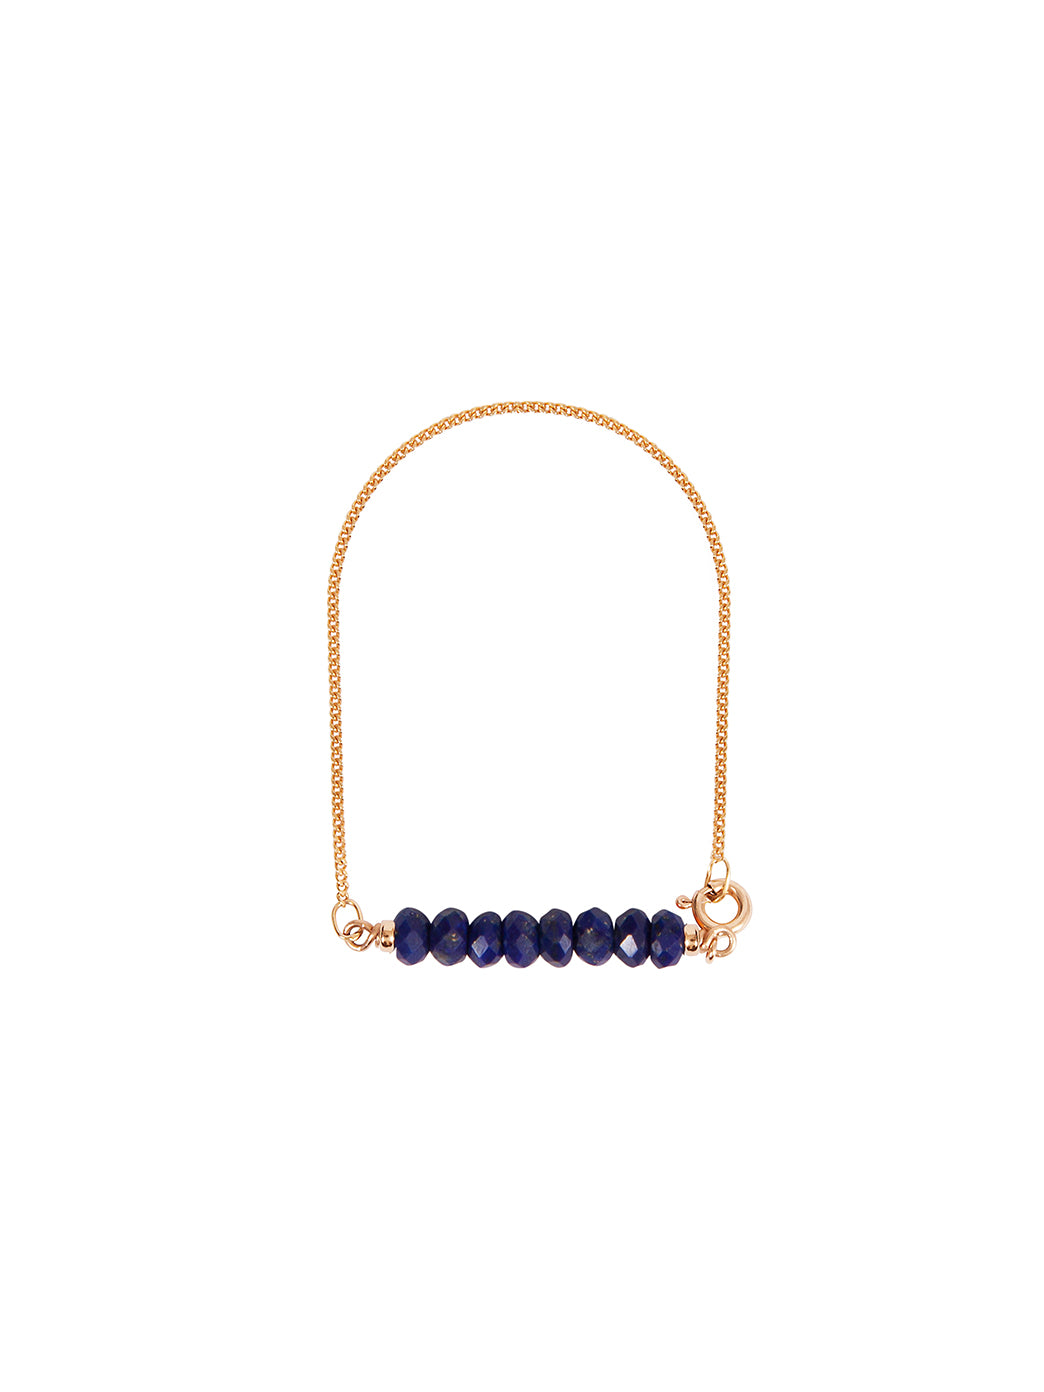 Fiorina Jewellery Gold Friendship Bracelet Lapis Faceted